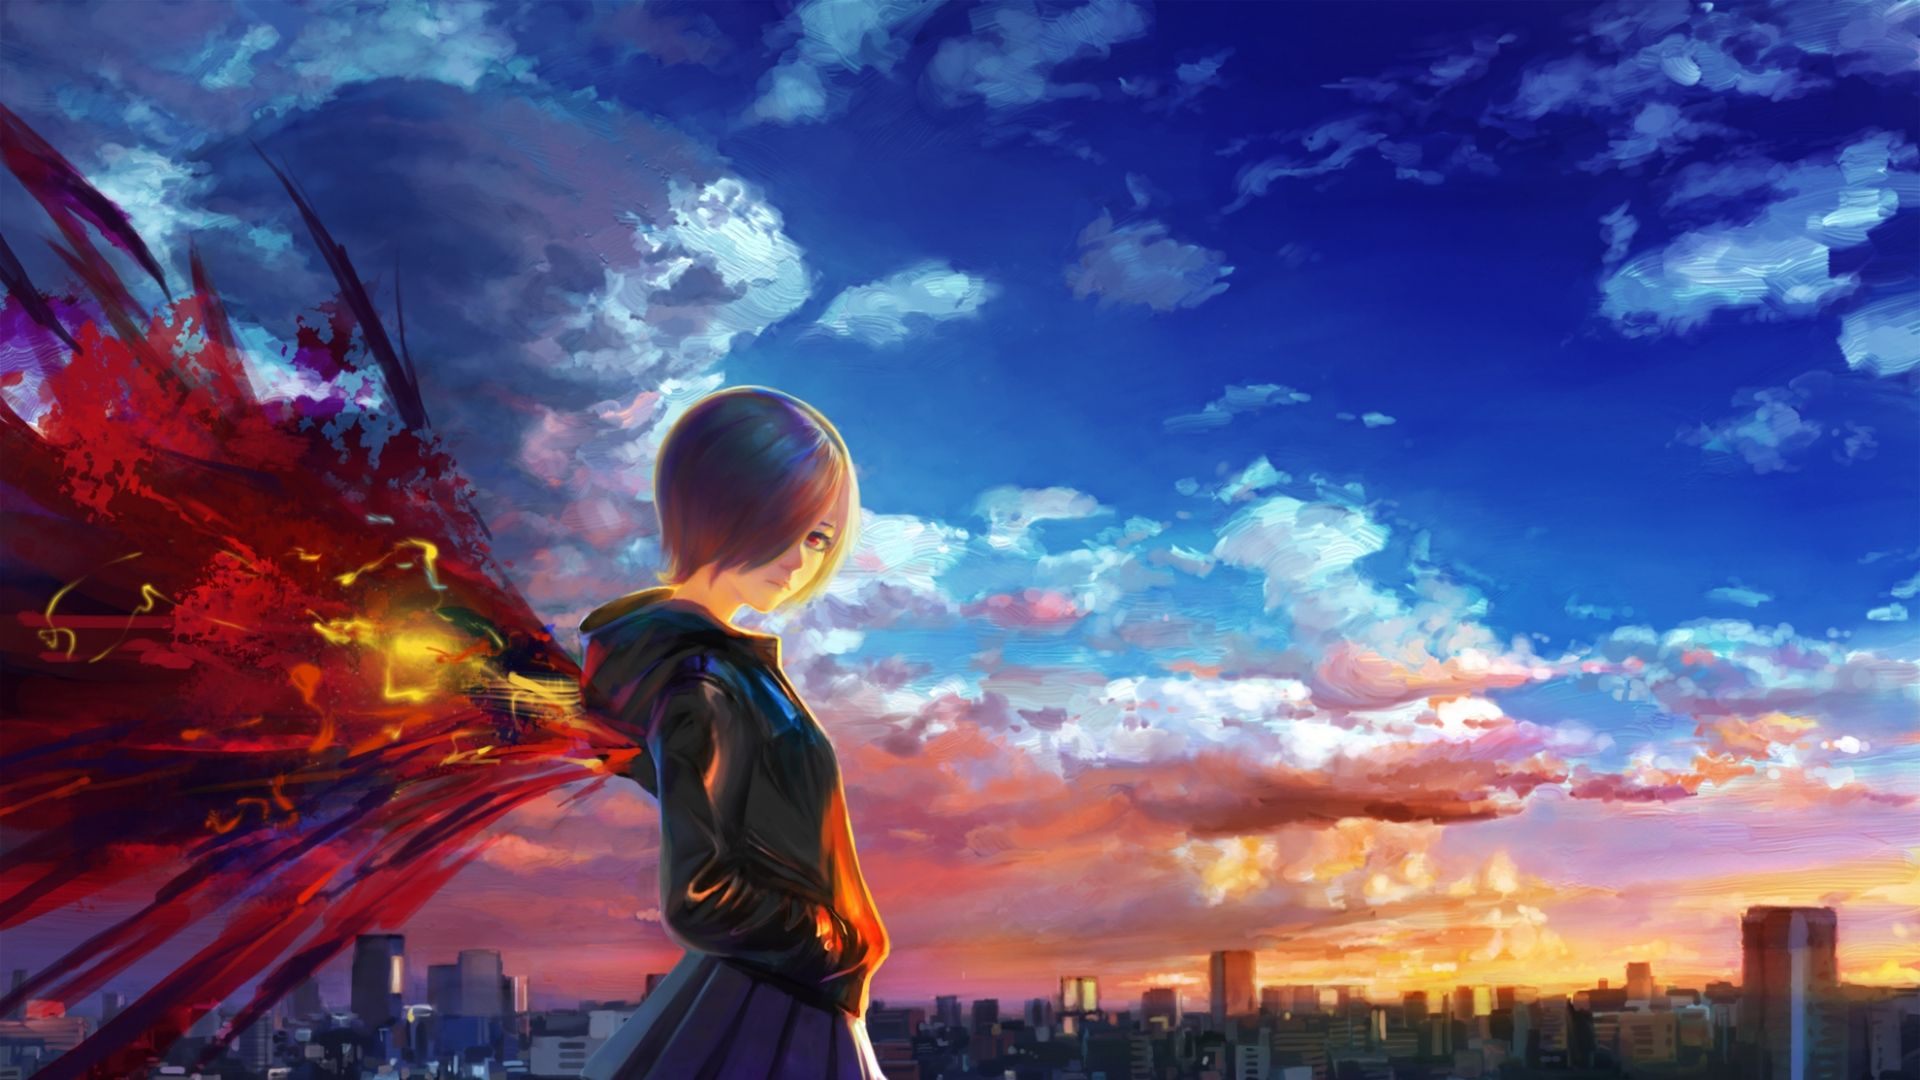 Cool Anime Wallpapers HD 1920x1080 10